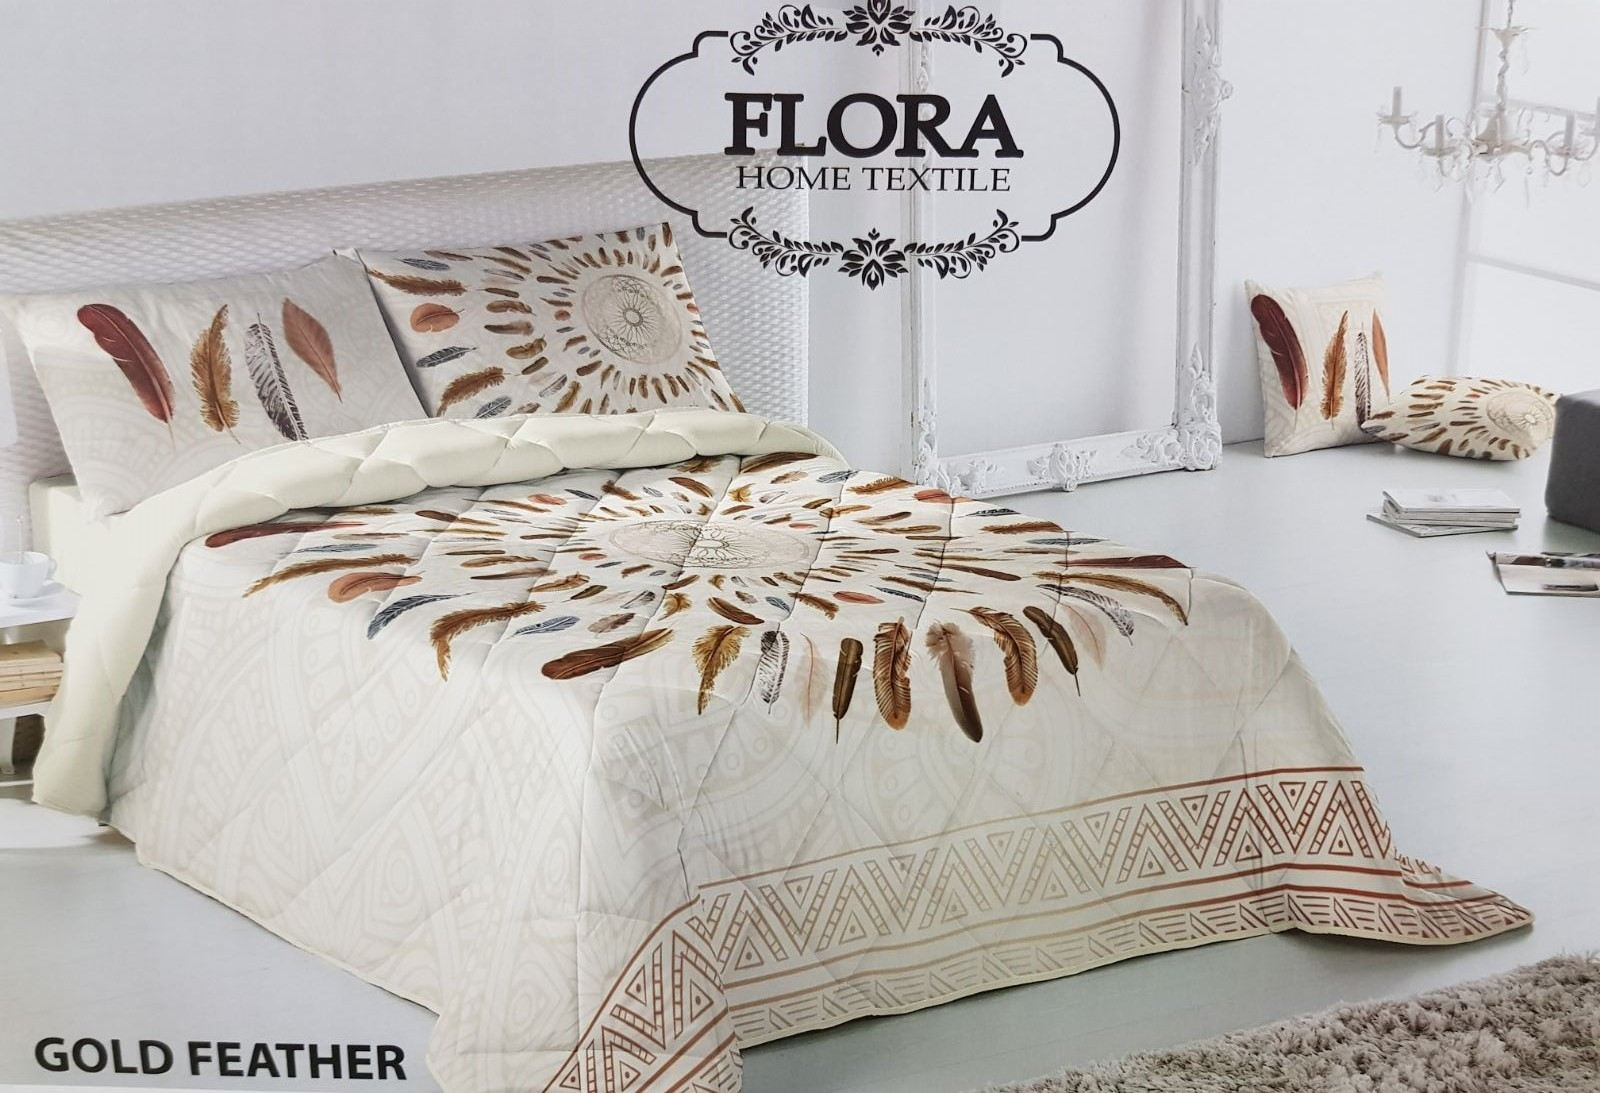 Couette Flora 2 Places - Gold Feather  - 240x260